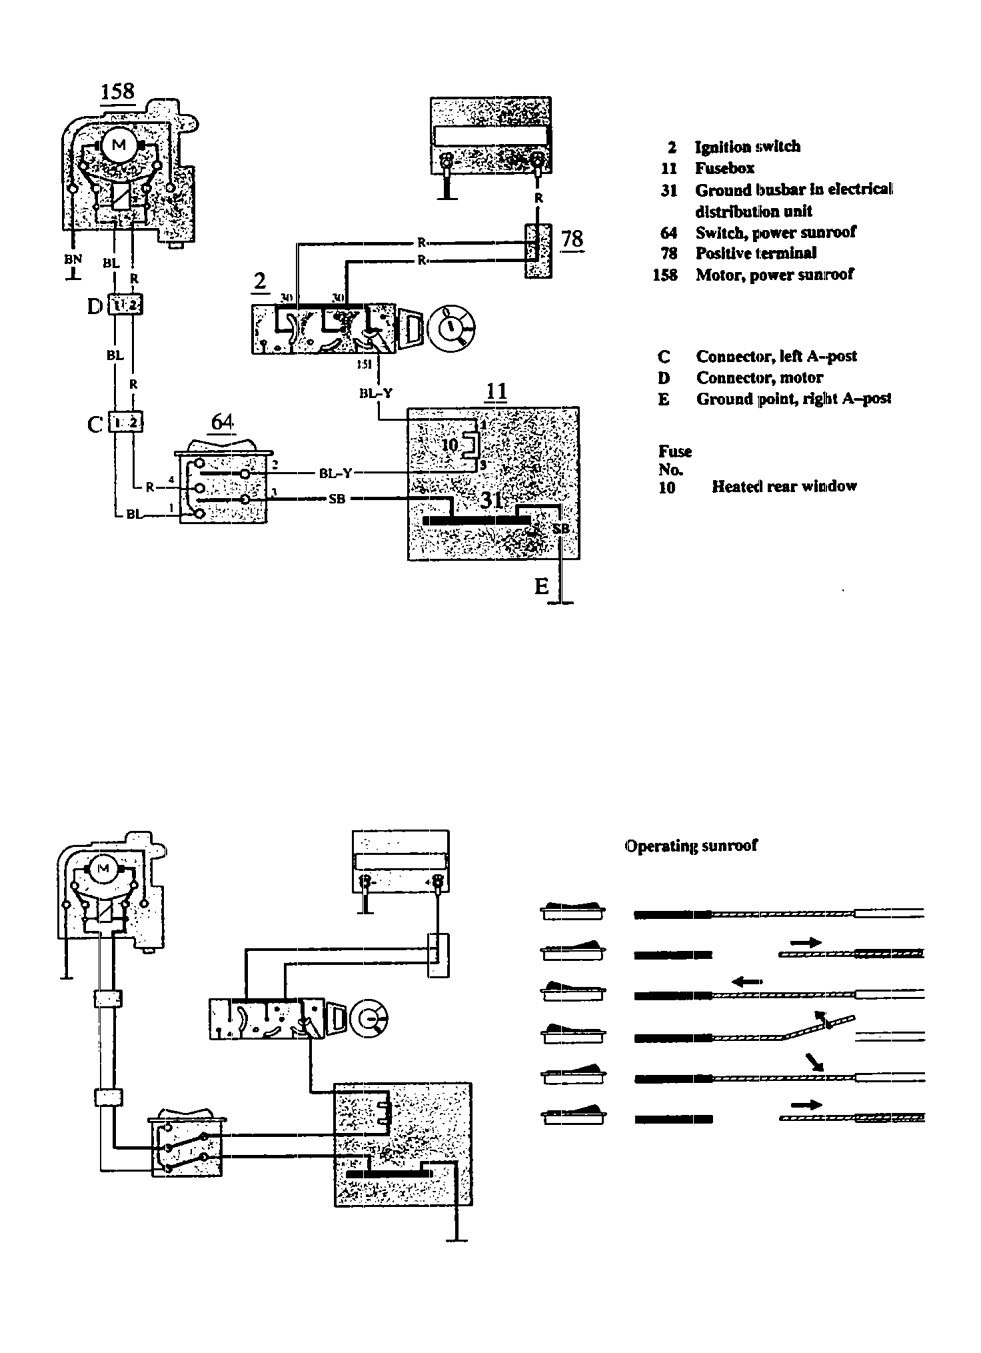 Volvo 940 (1991) - wiring diagrams - sun roof - CARKNOWLEDGE